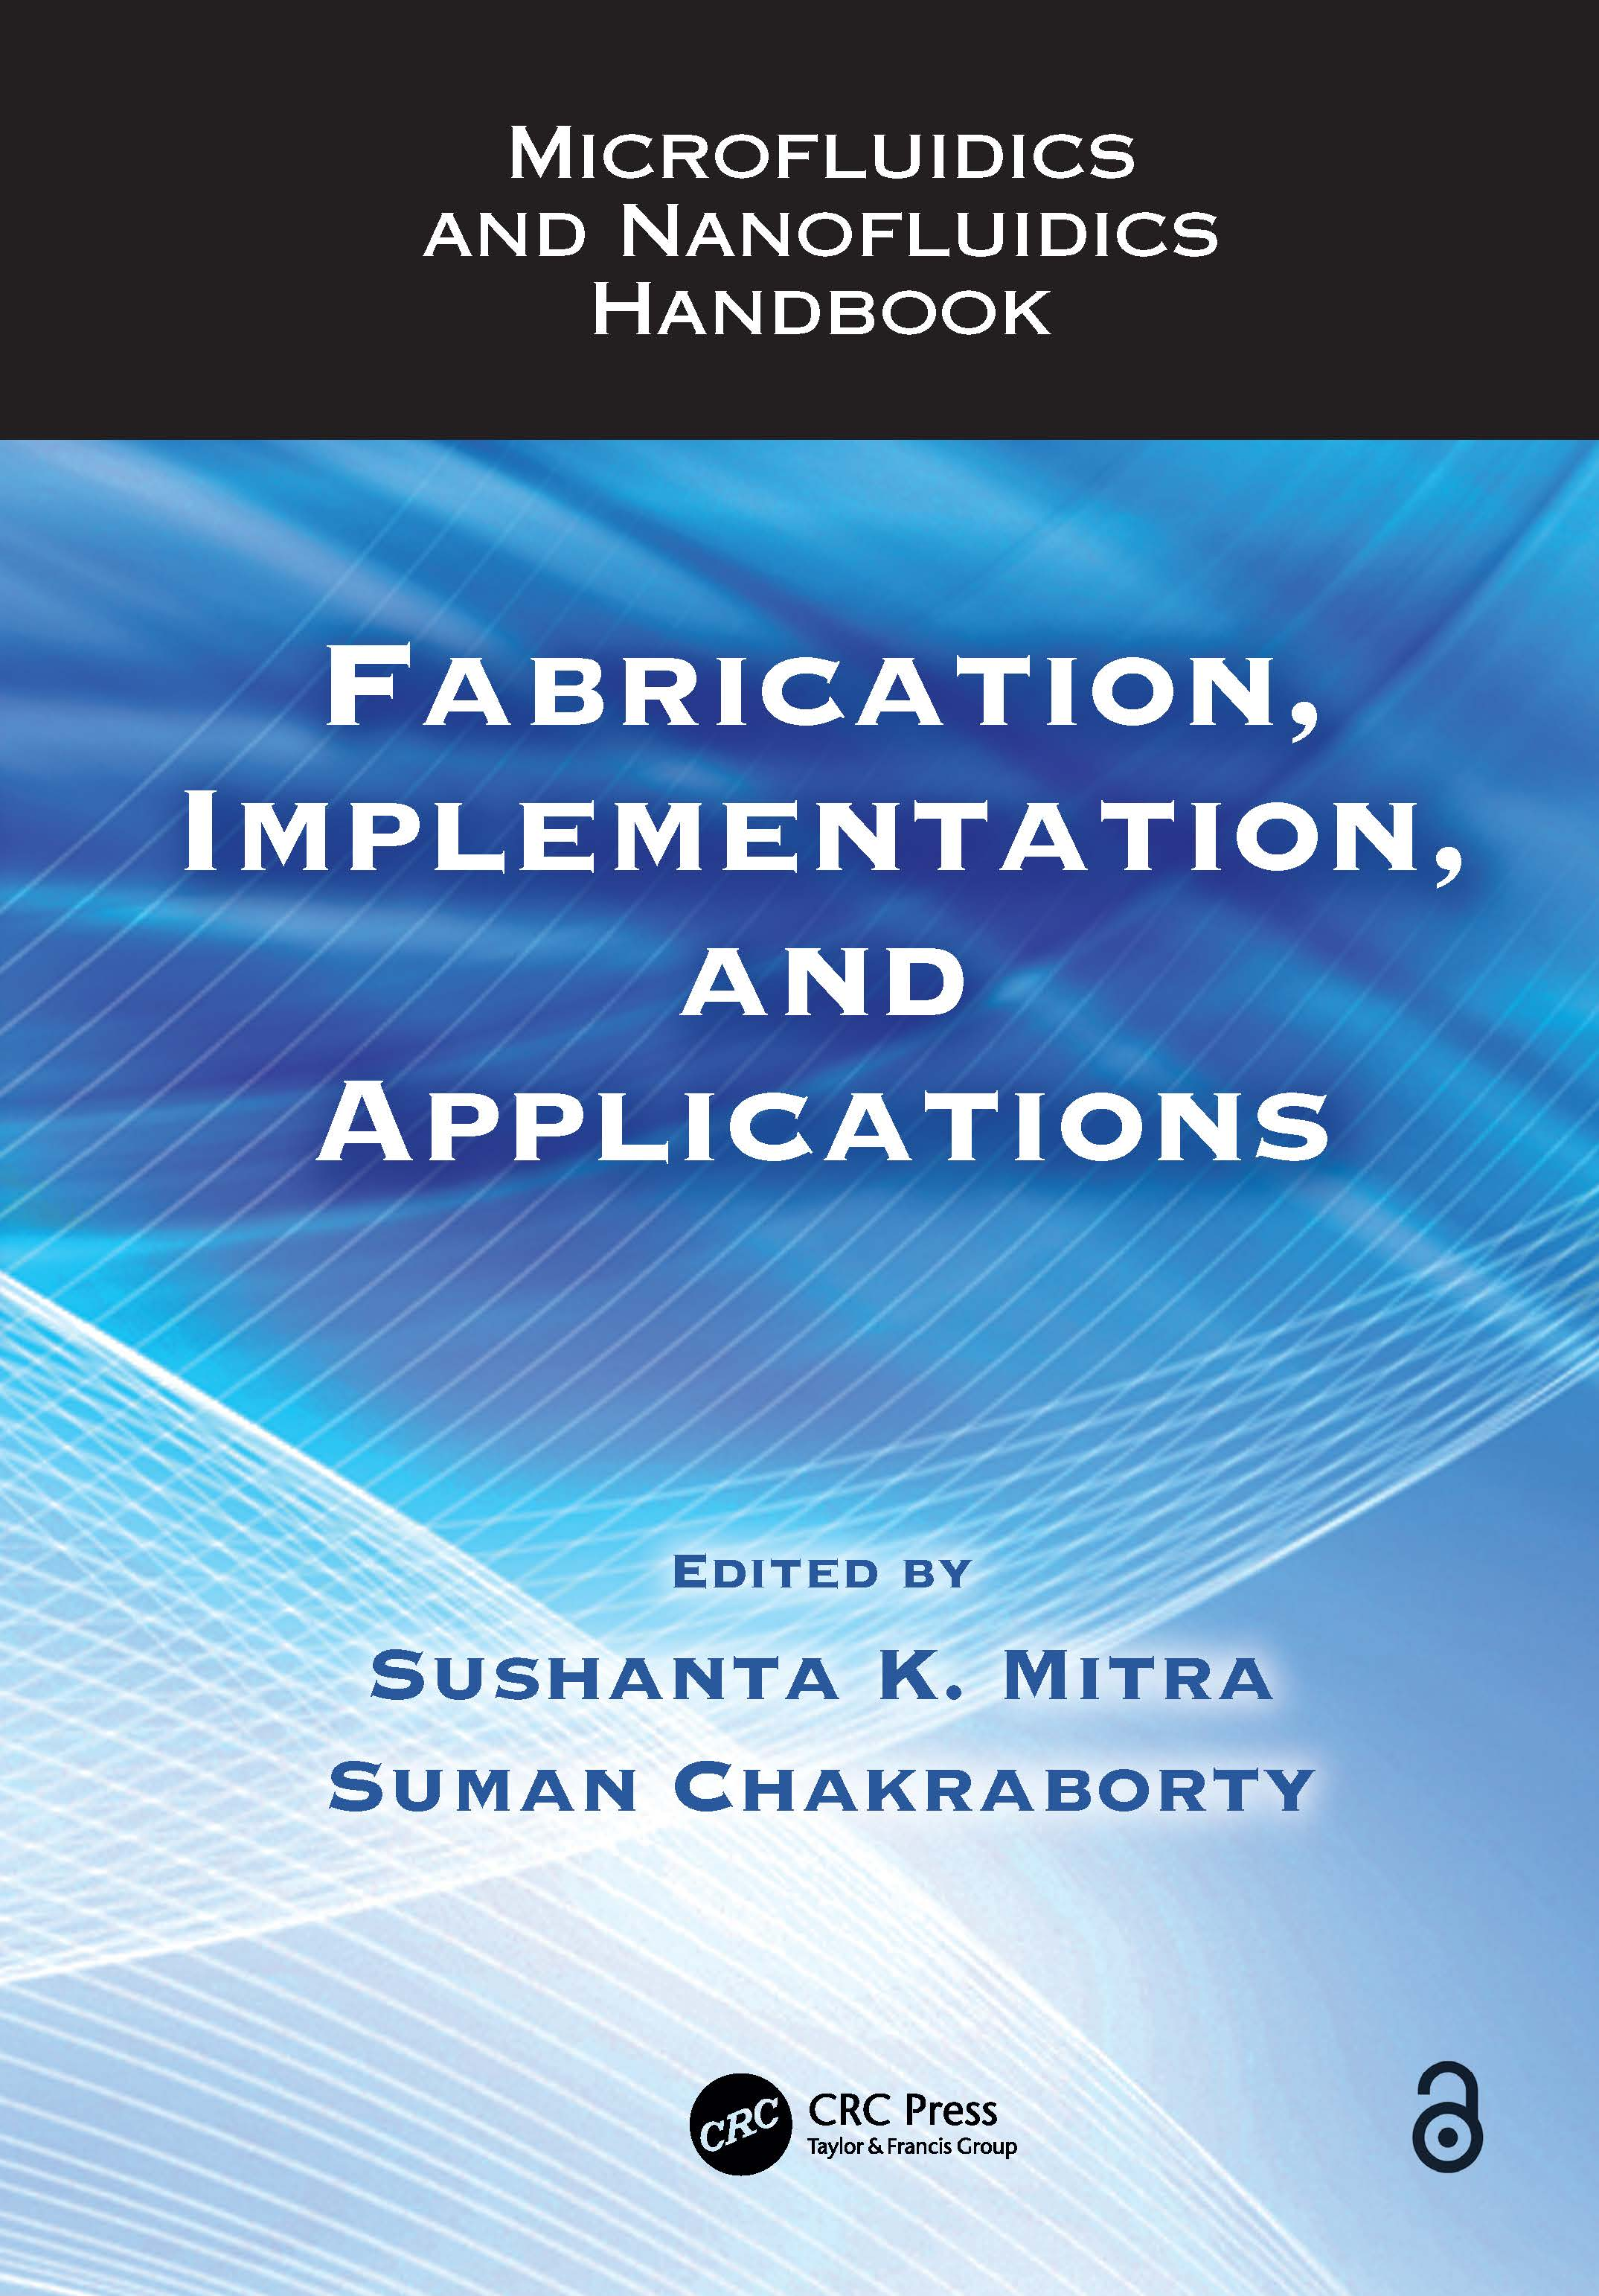 Microfluidics and Nanofluidics Handbook Fabrication, Implementation, and Applications book cover